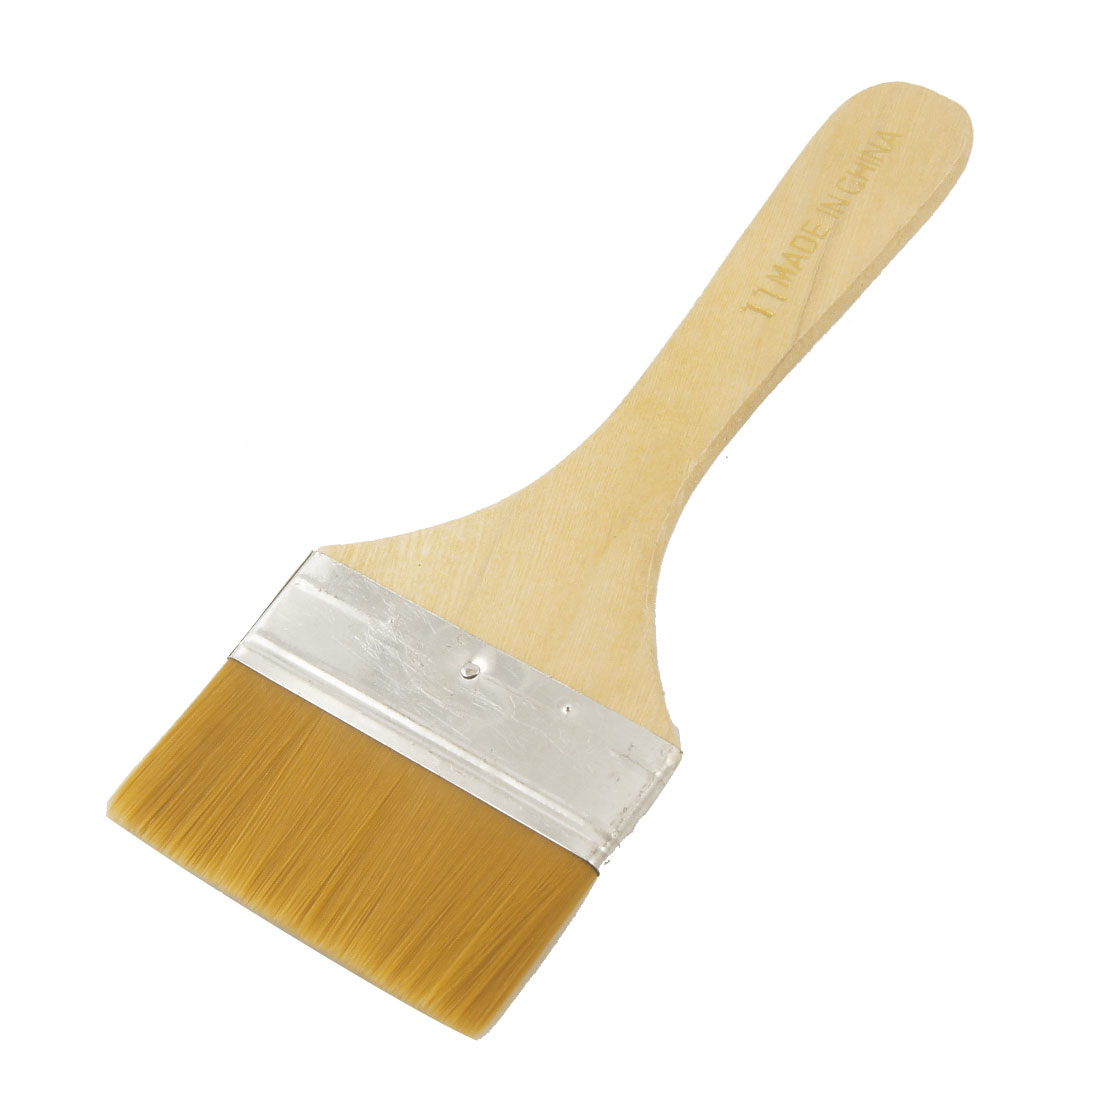 "Paints Brown 2.9"" Wide Faux Fur Head Wooden Handle Painting Brush"